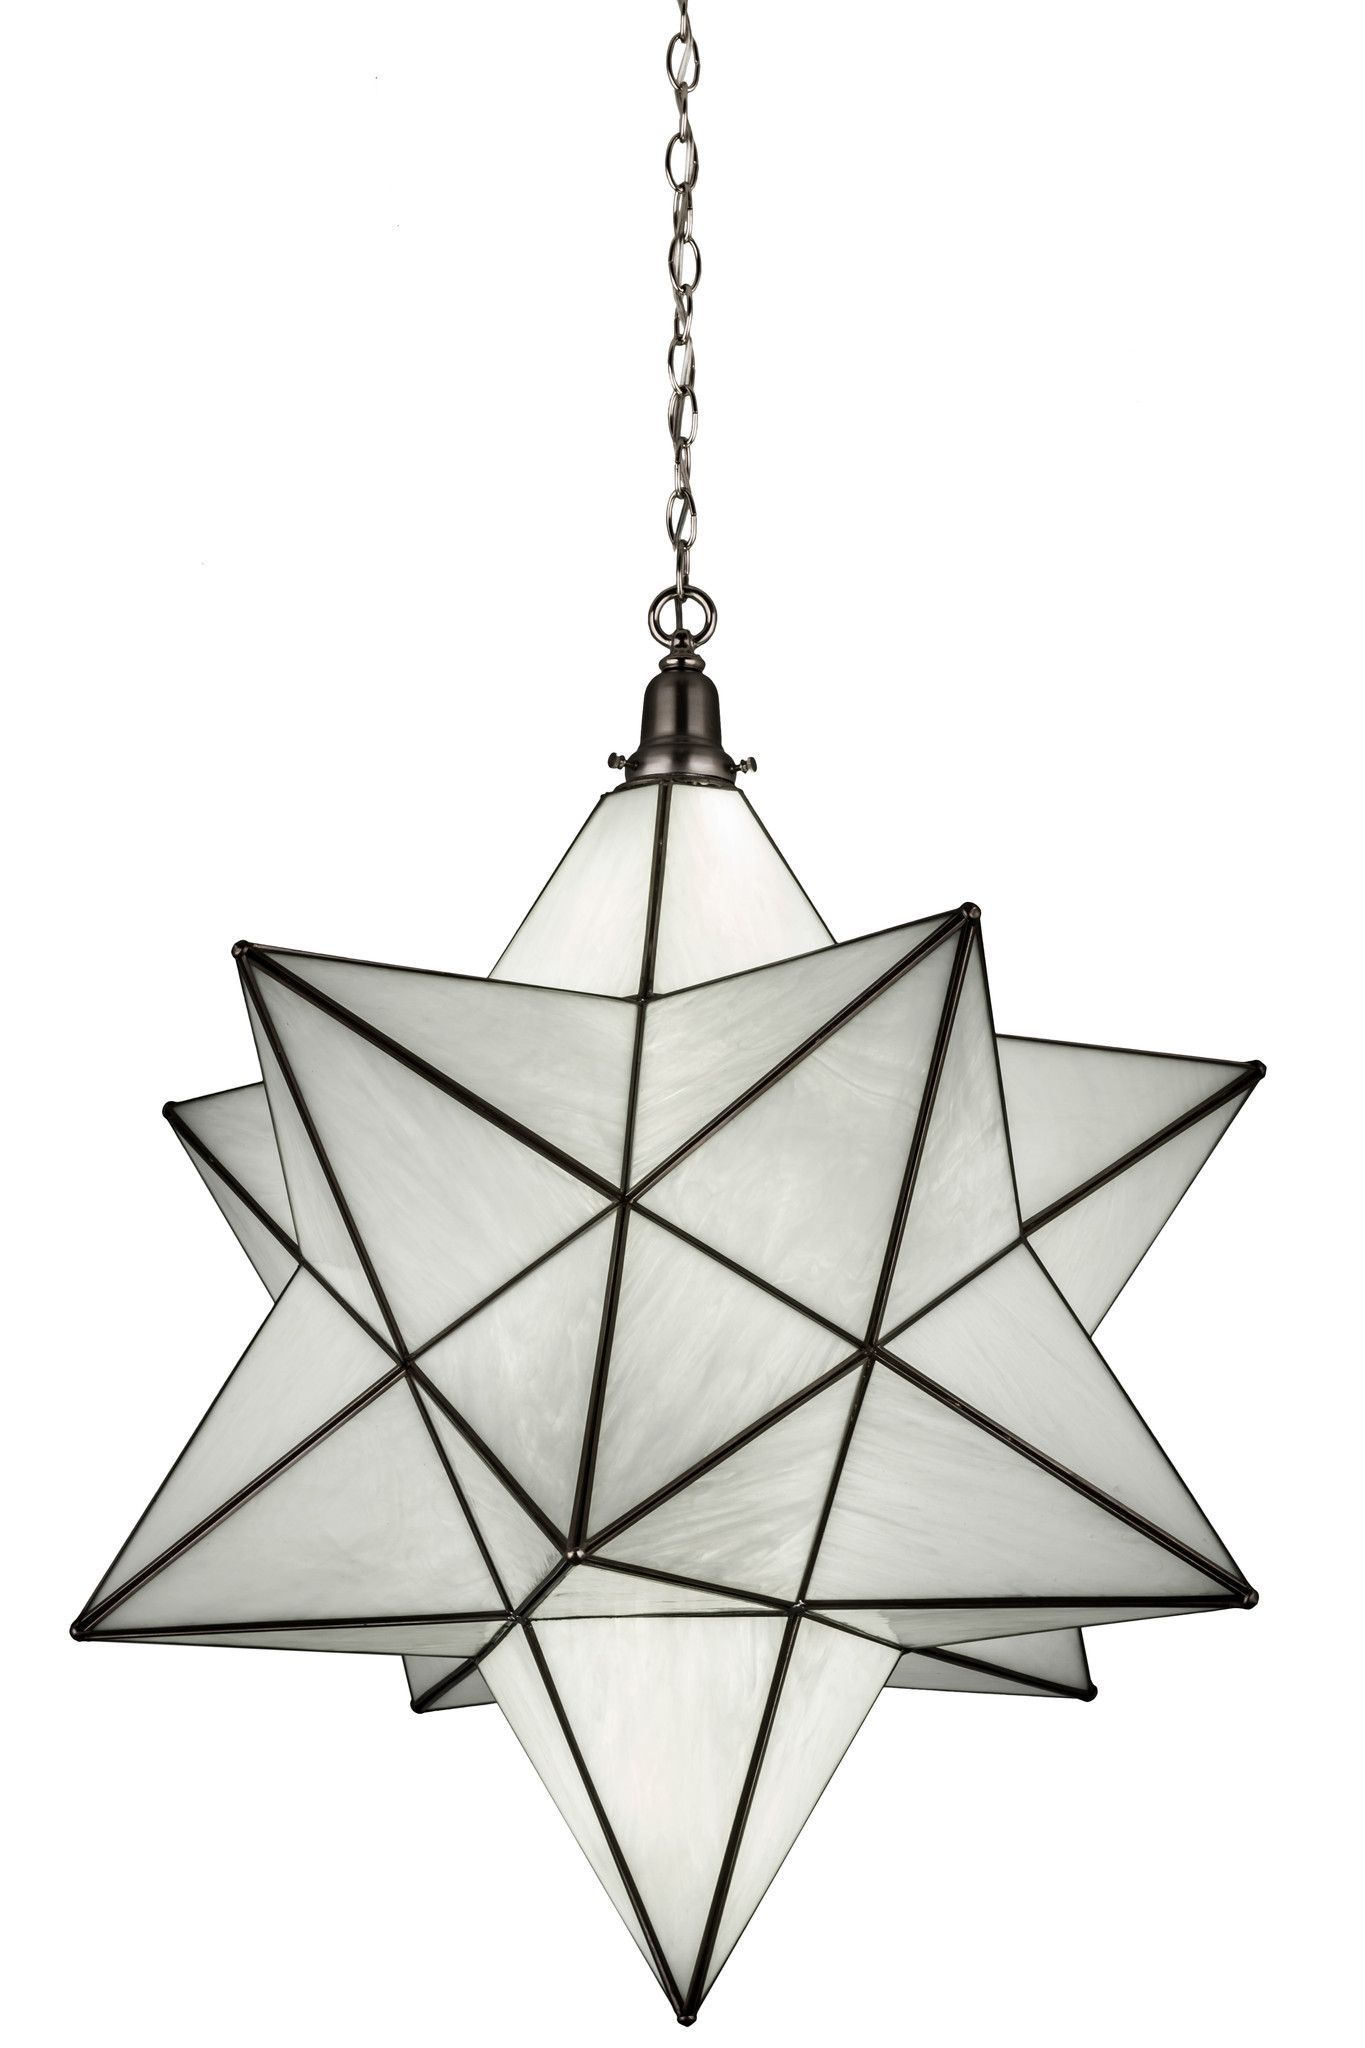 ideas pendant star chandelier property moravian images on for furnitures architecture light design luxury best pinterest lighting your amazing